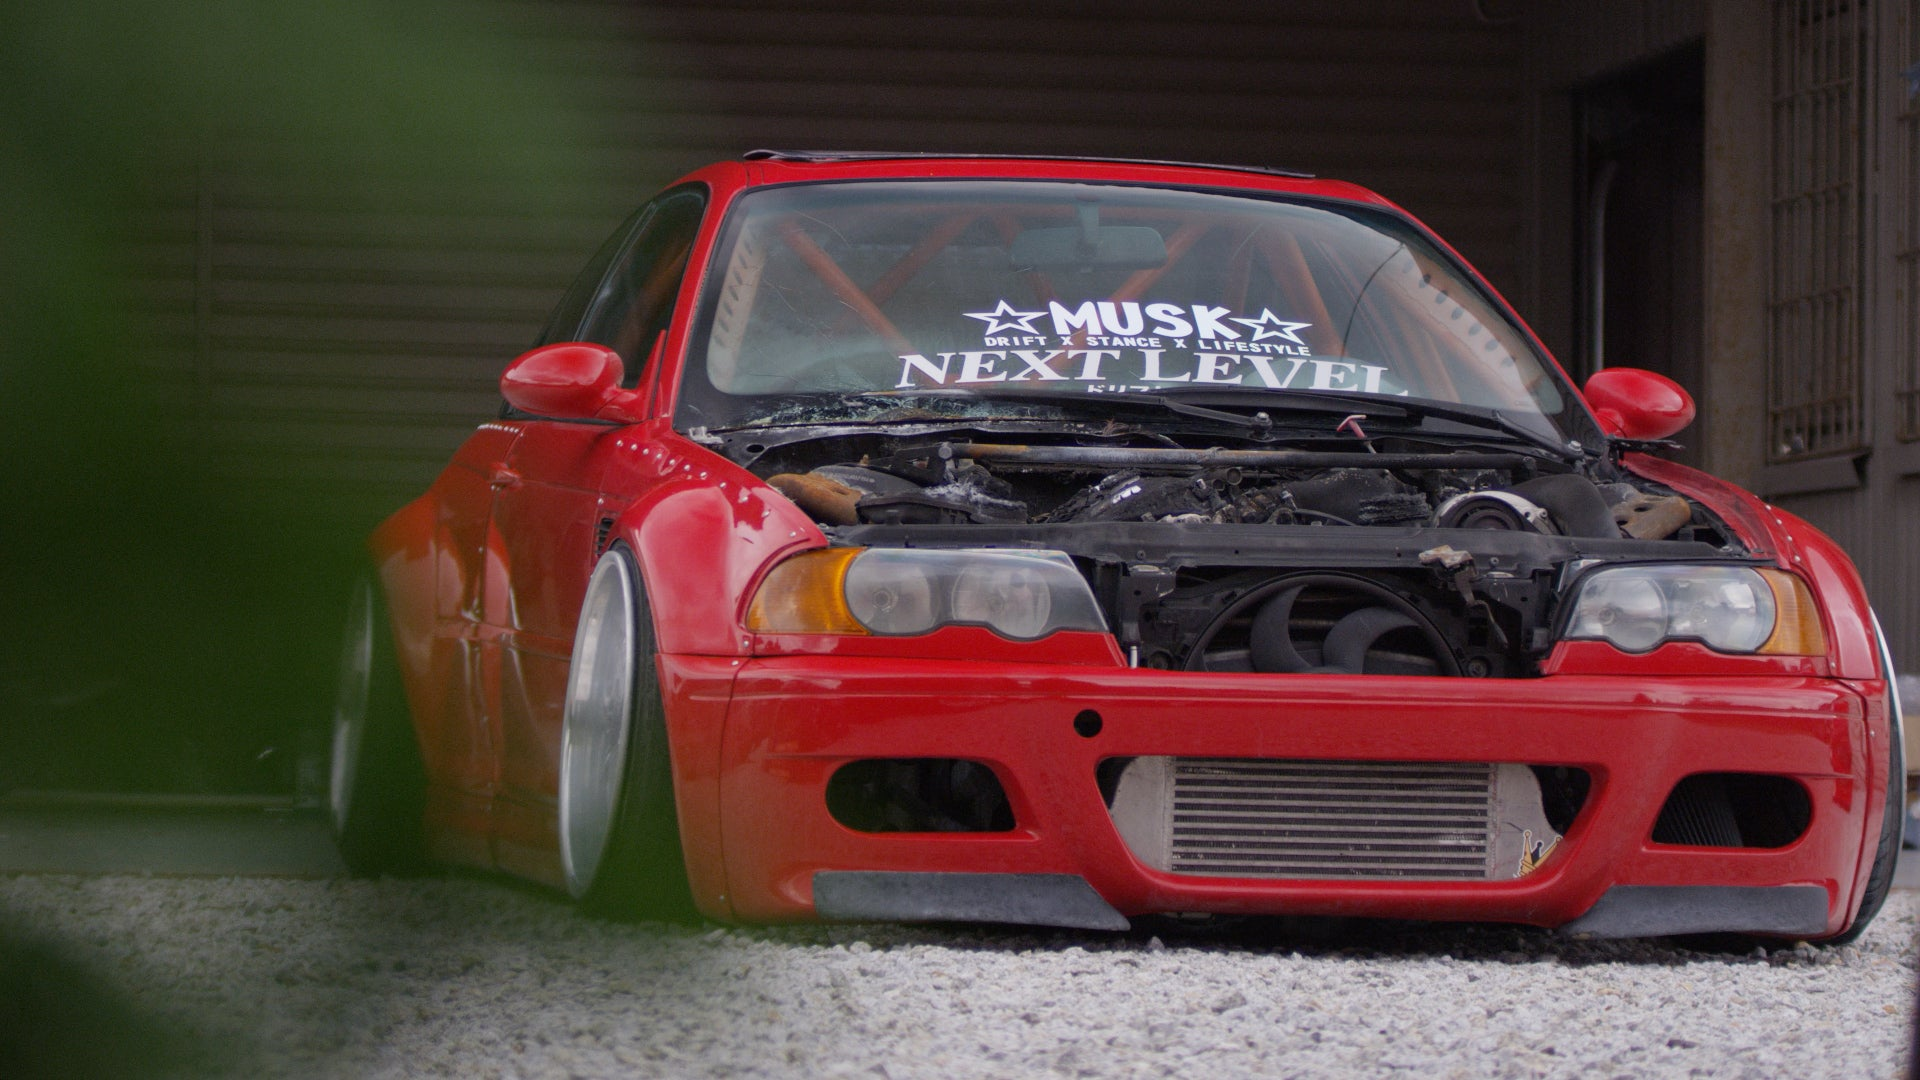 Poland S Hottest Drift Car Compound Hert Visits The Style